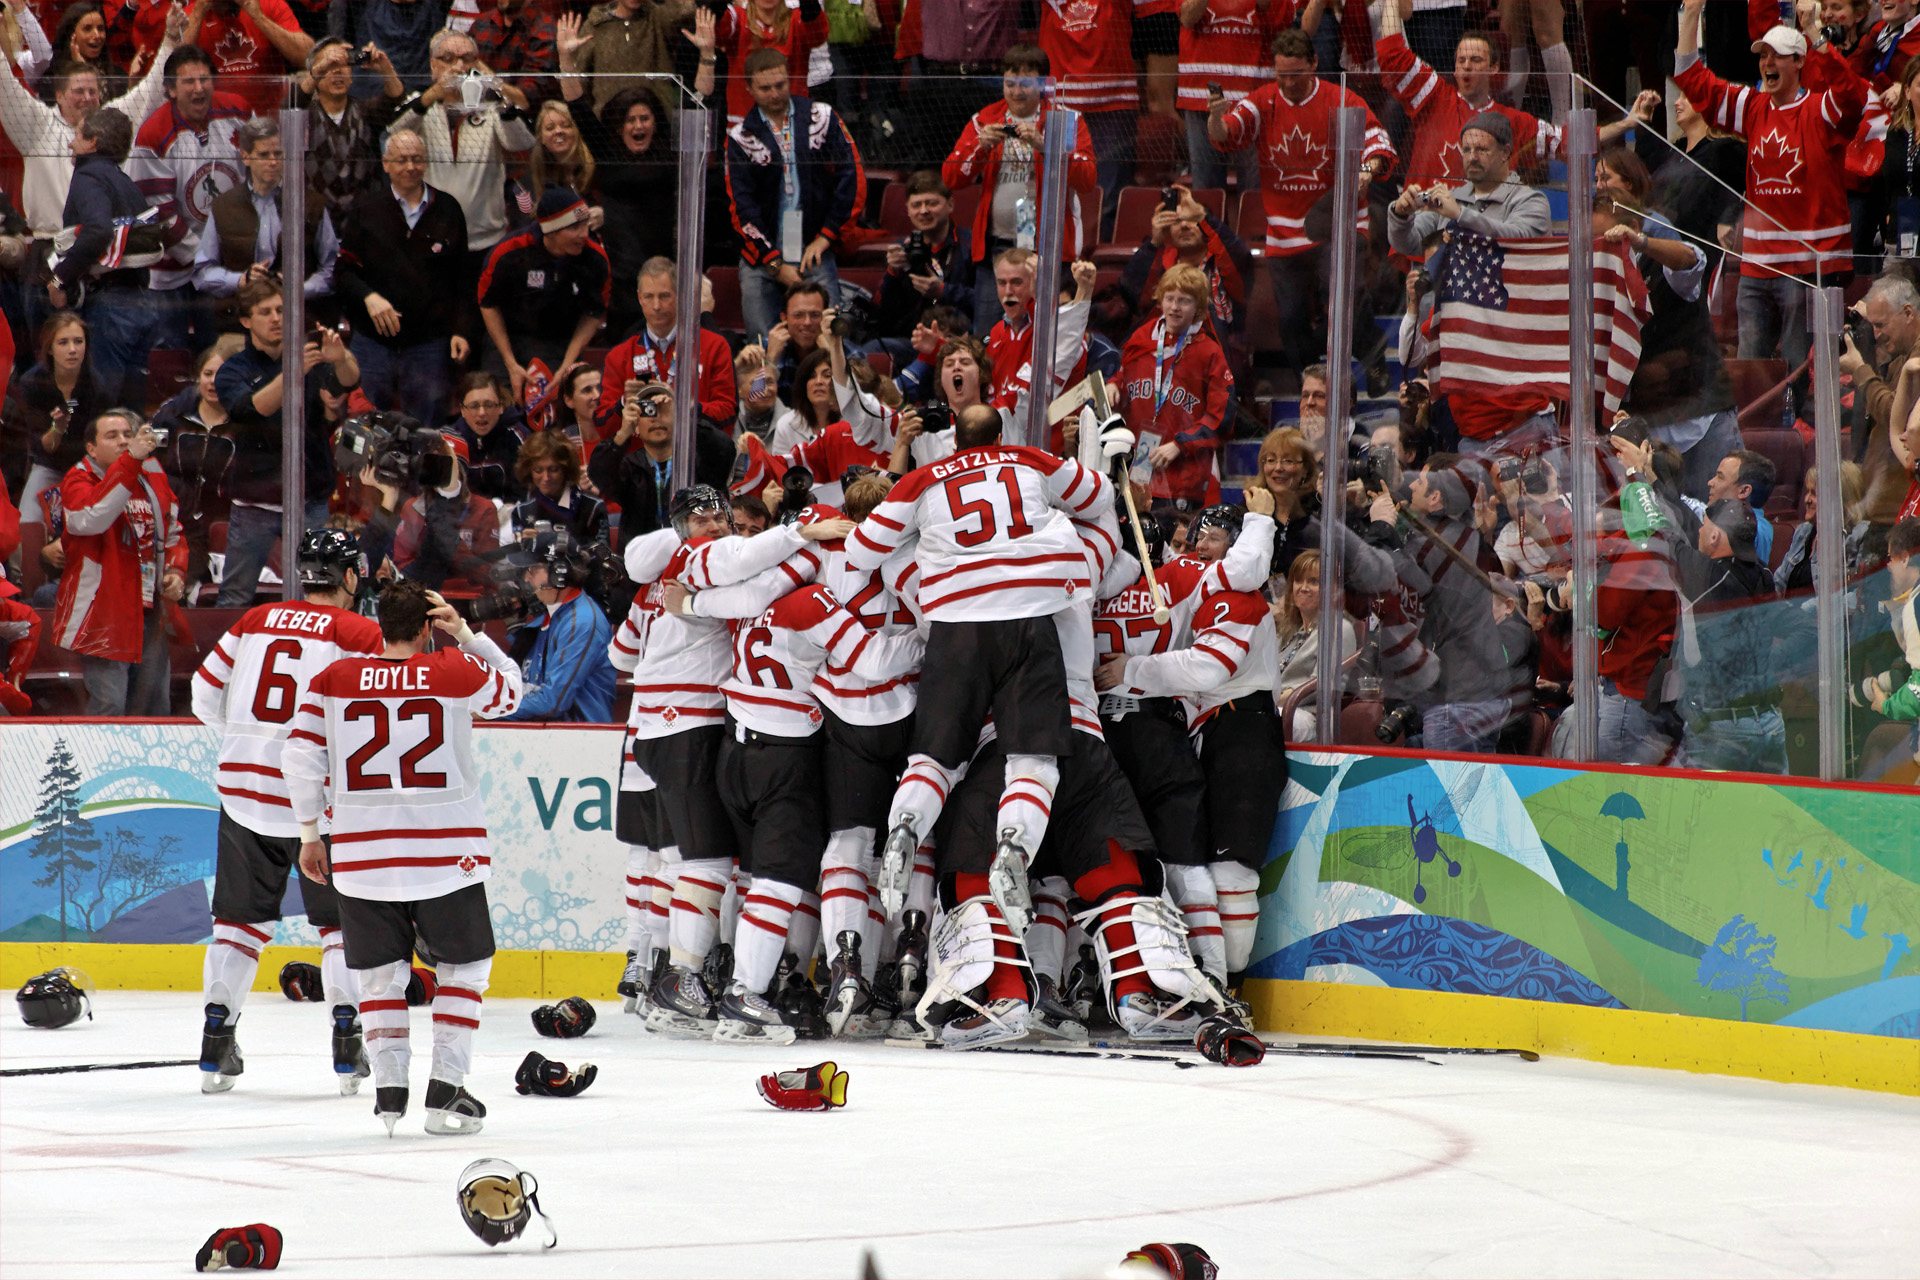 hockey s influence on a page essay on the impact the the canadian men s ice hockey team celebrates winning the gold medal in overtime over the united